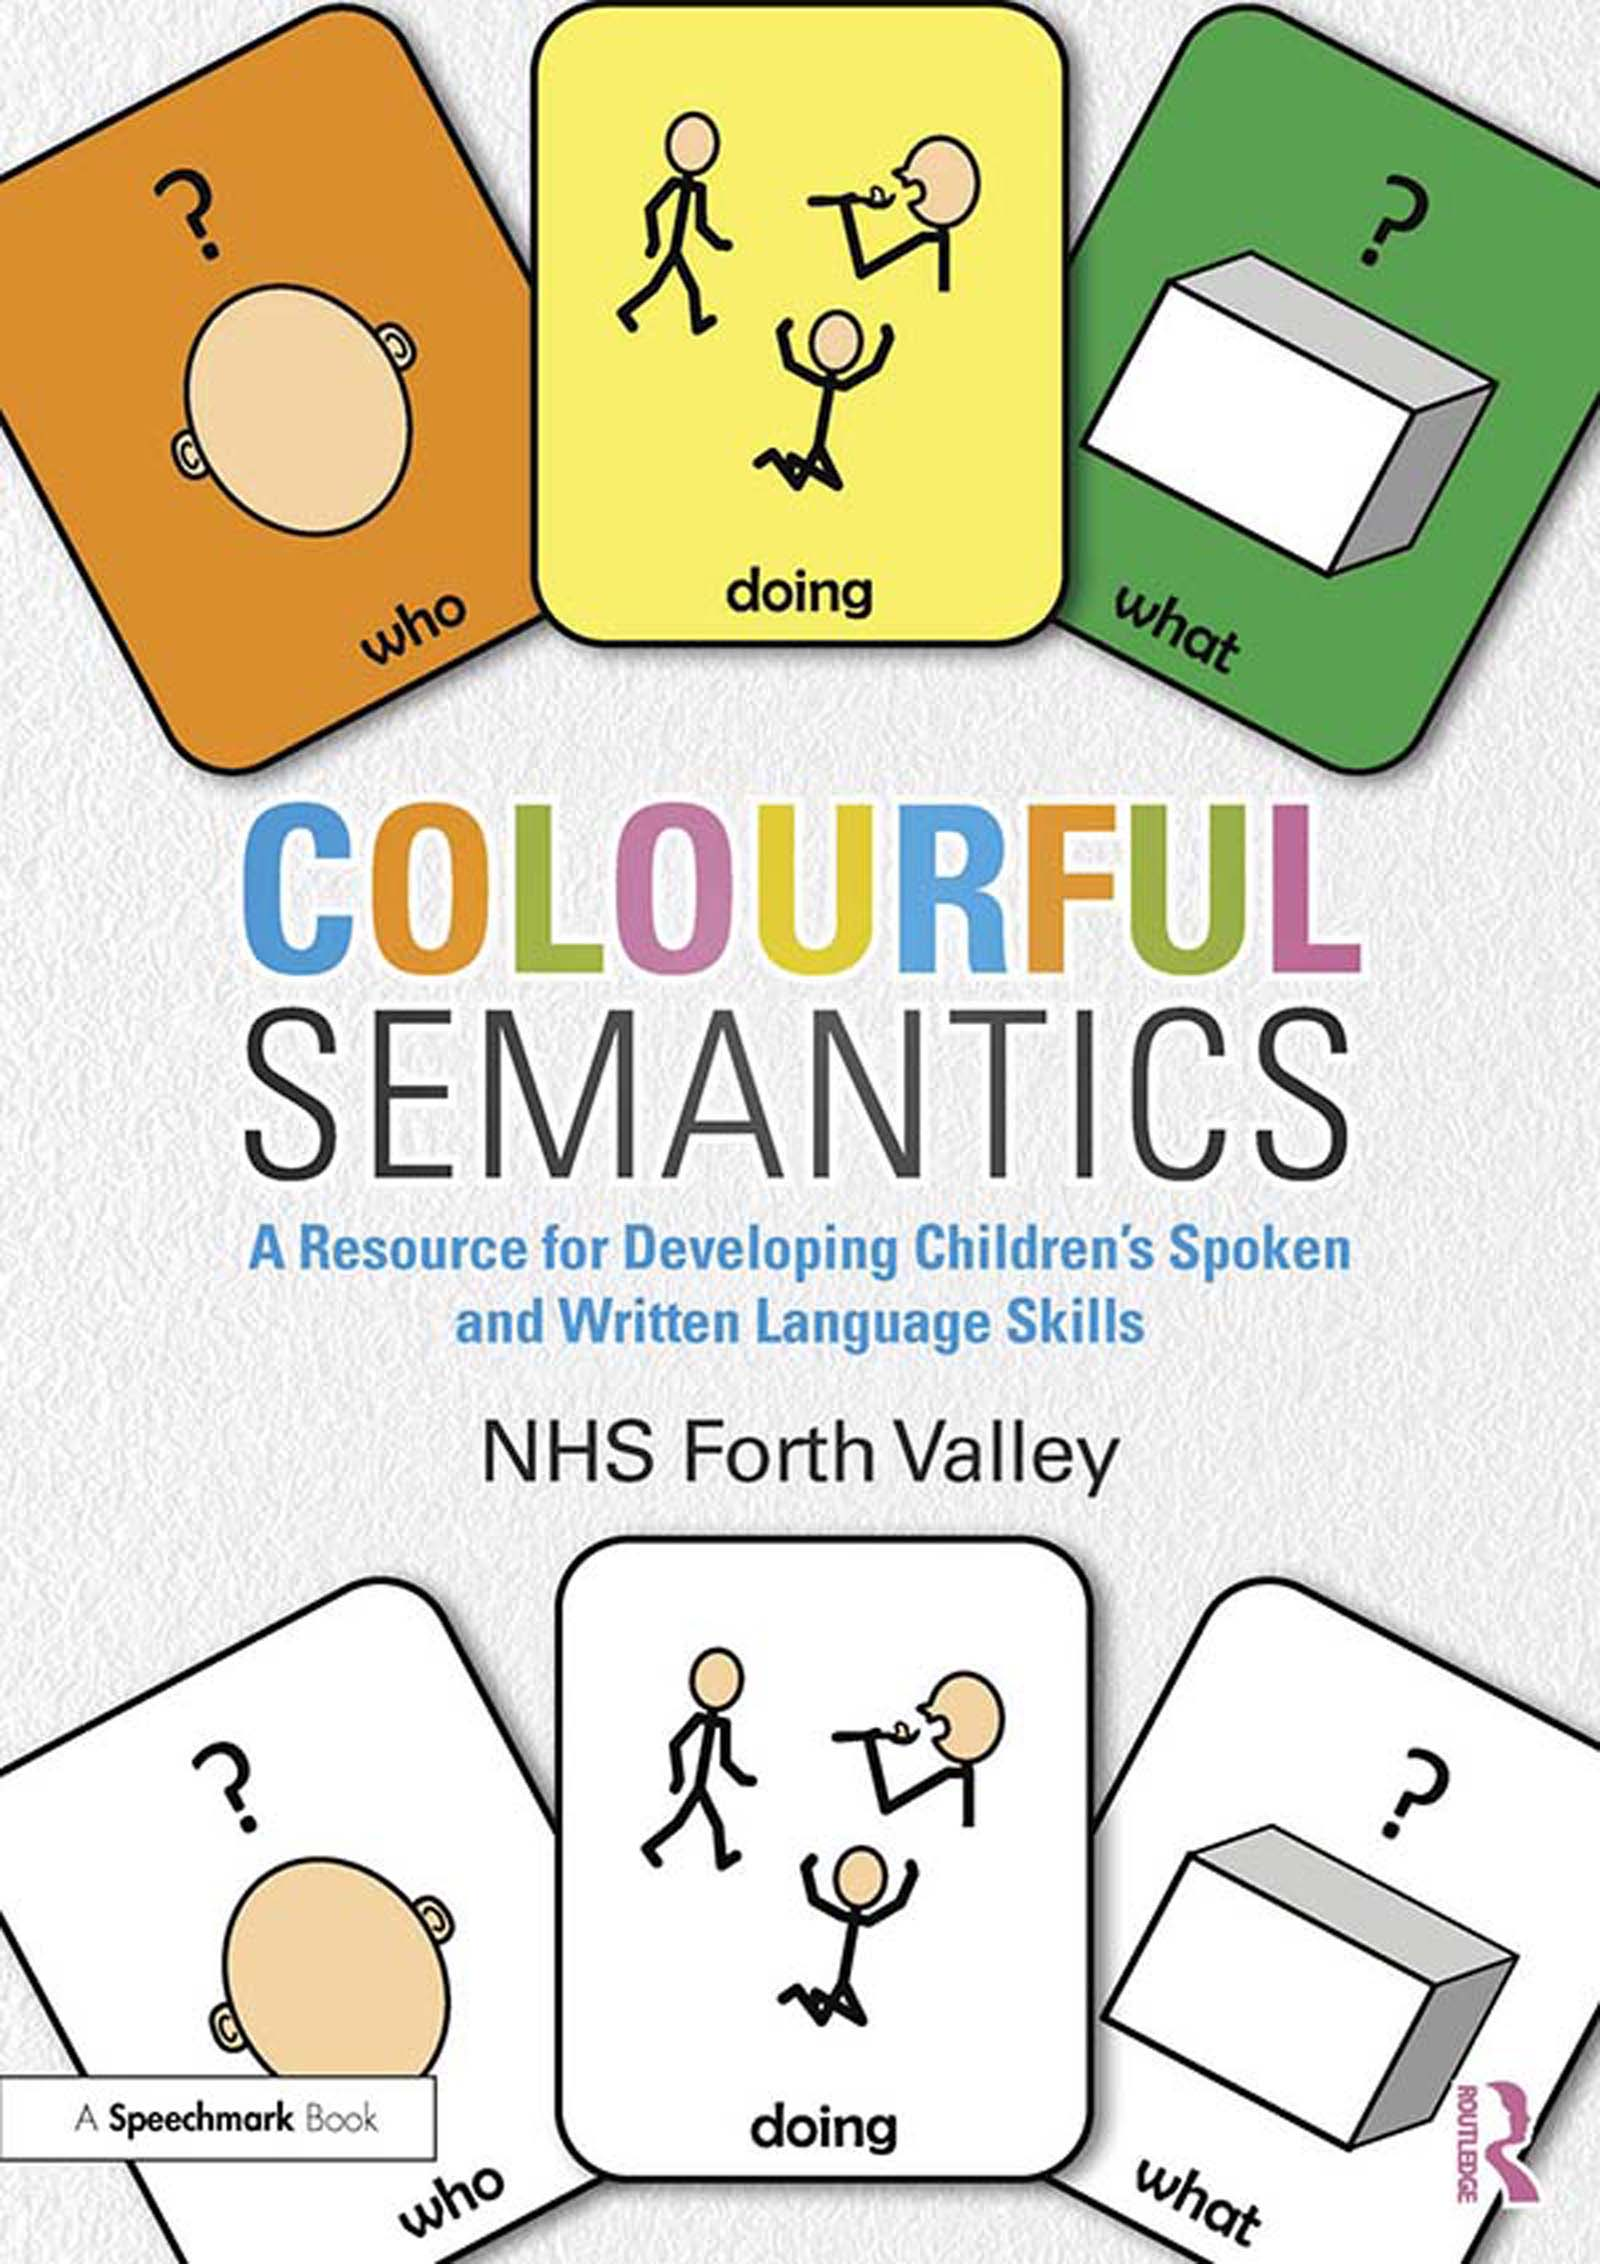 Colourful Semantics for classes and groups